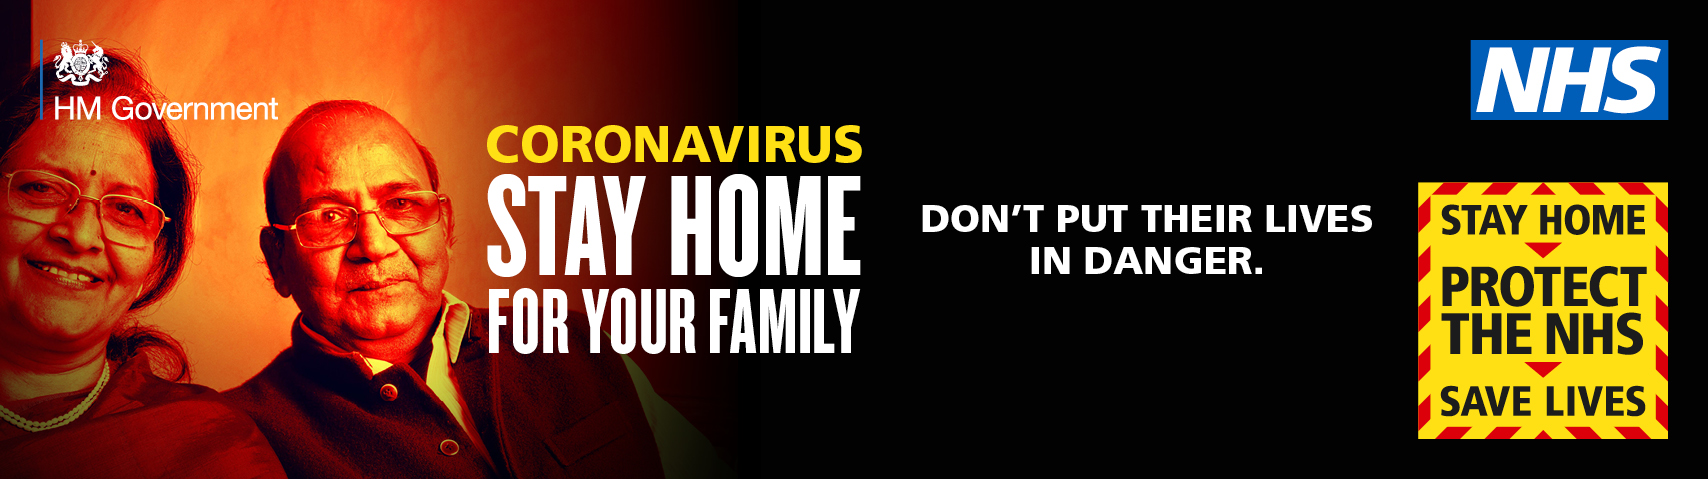 Coronavirus.  Stay home for your family.  Don't put their lives in danger.  Stay home, protect the NHS, save lives